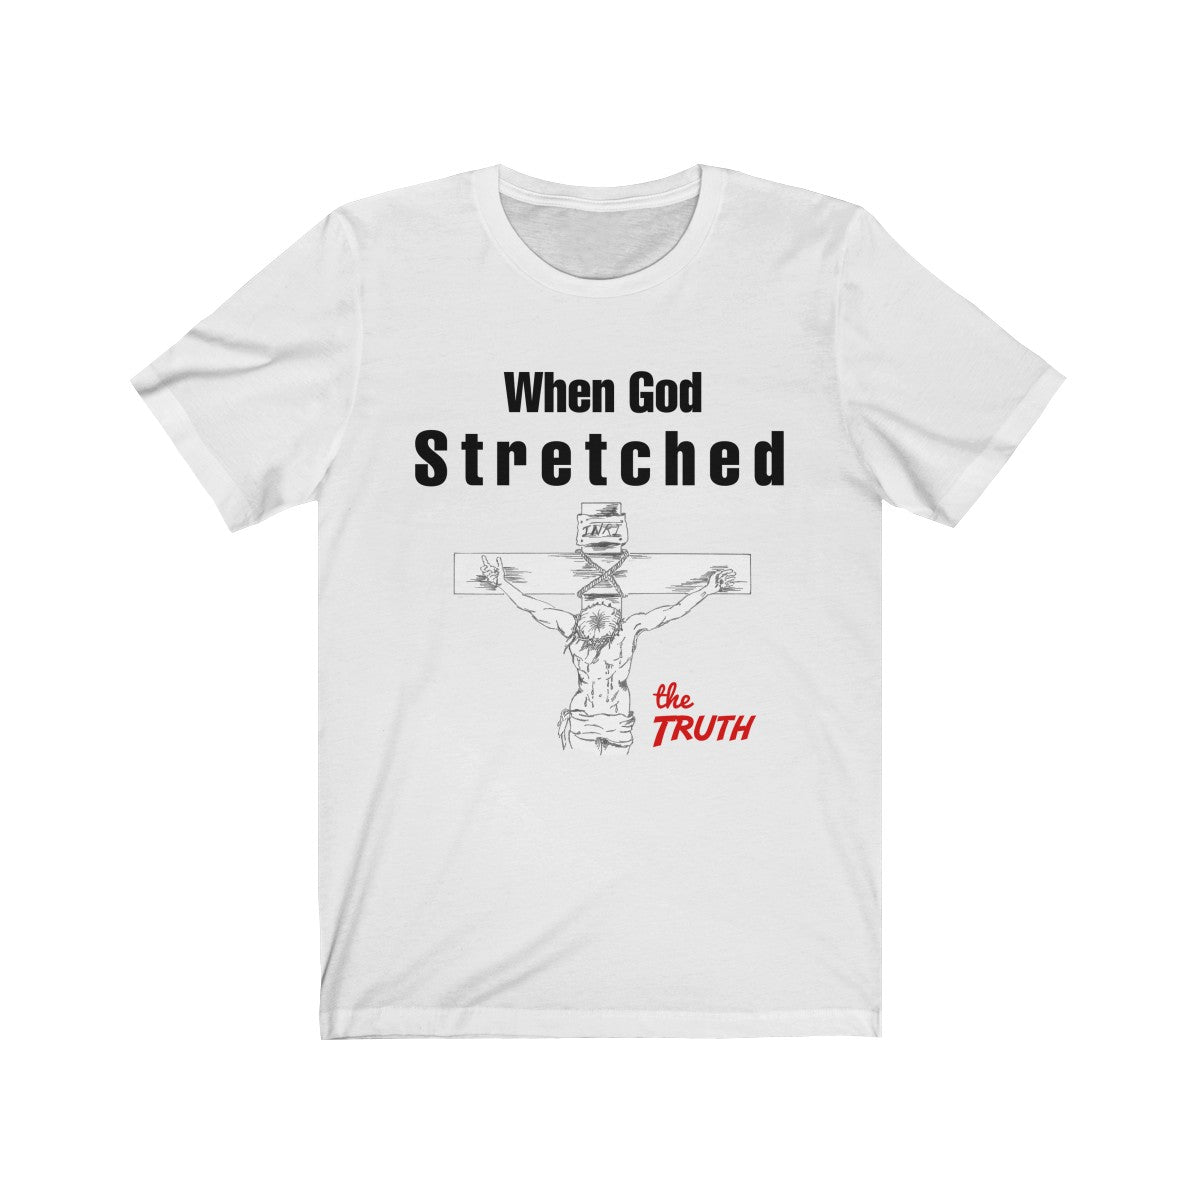 God can not lie but this Christian T-Shirt shows God did stretch the Truth!